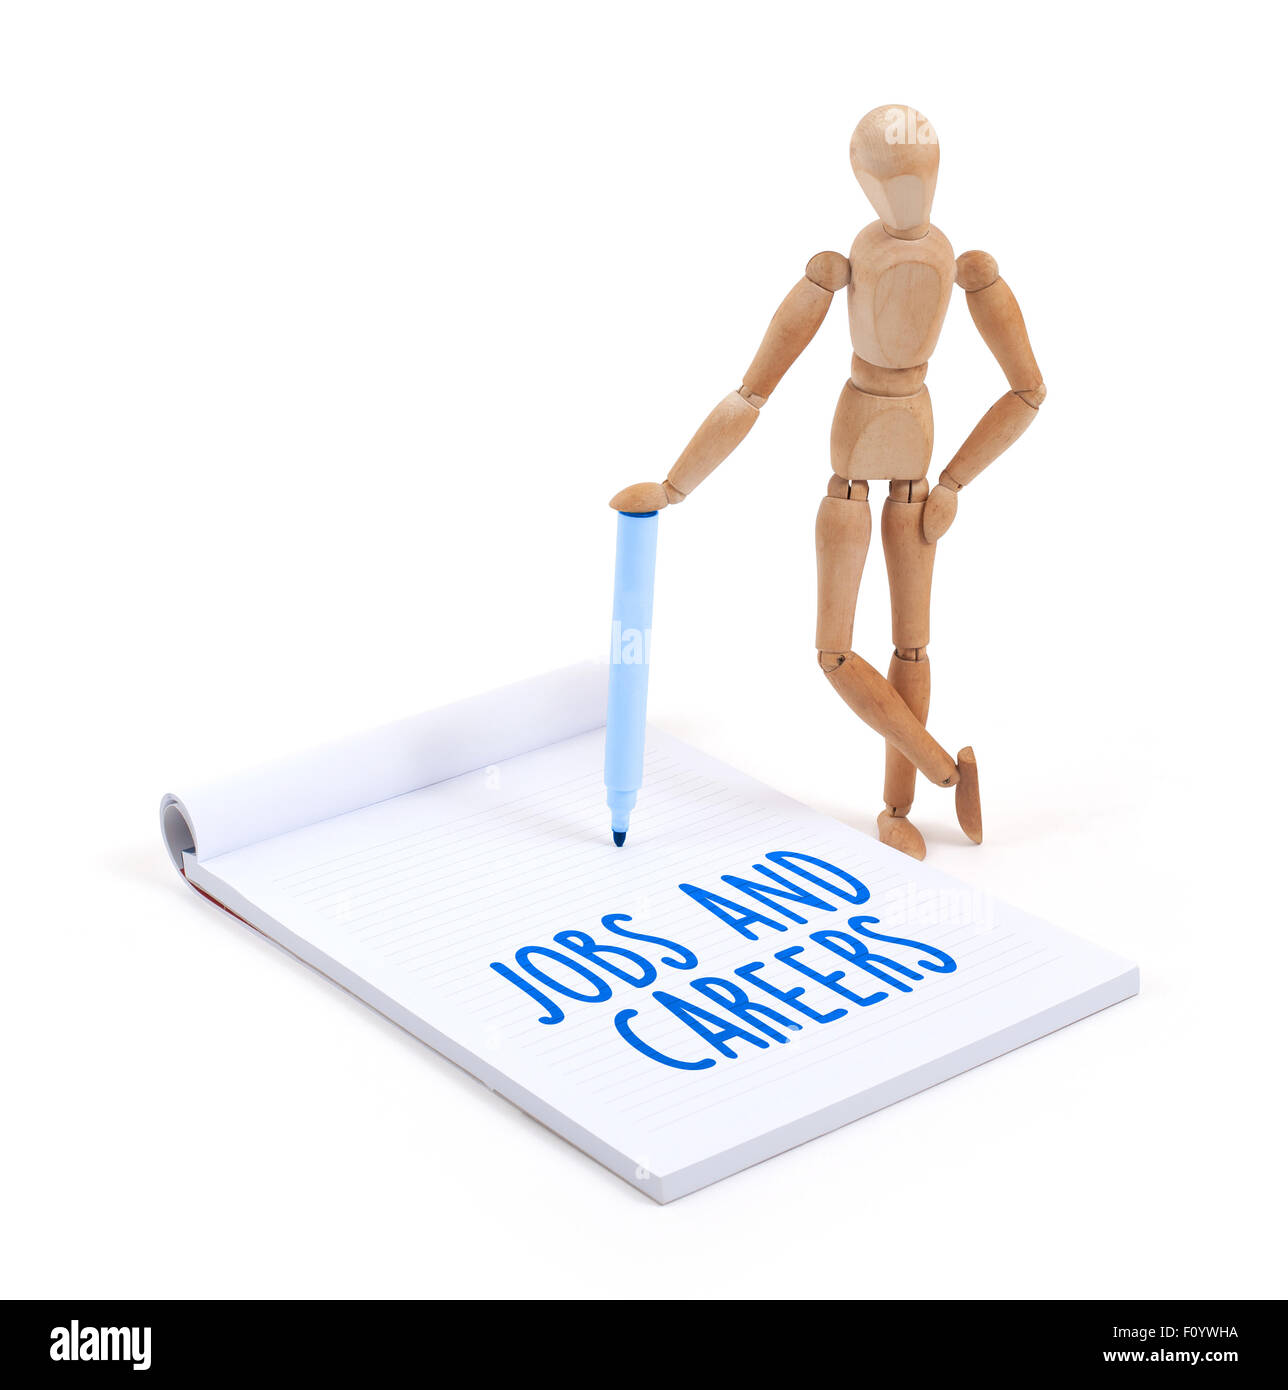 Wooden mannequin writing in a scrapbook - Jobs and careers - Stock Image